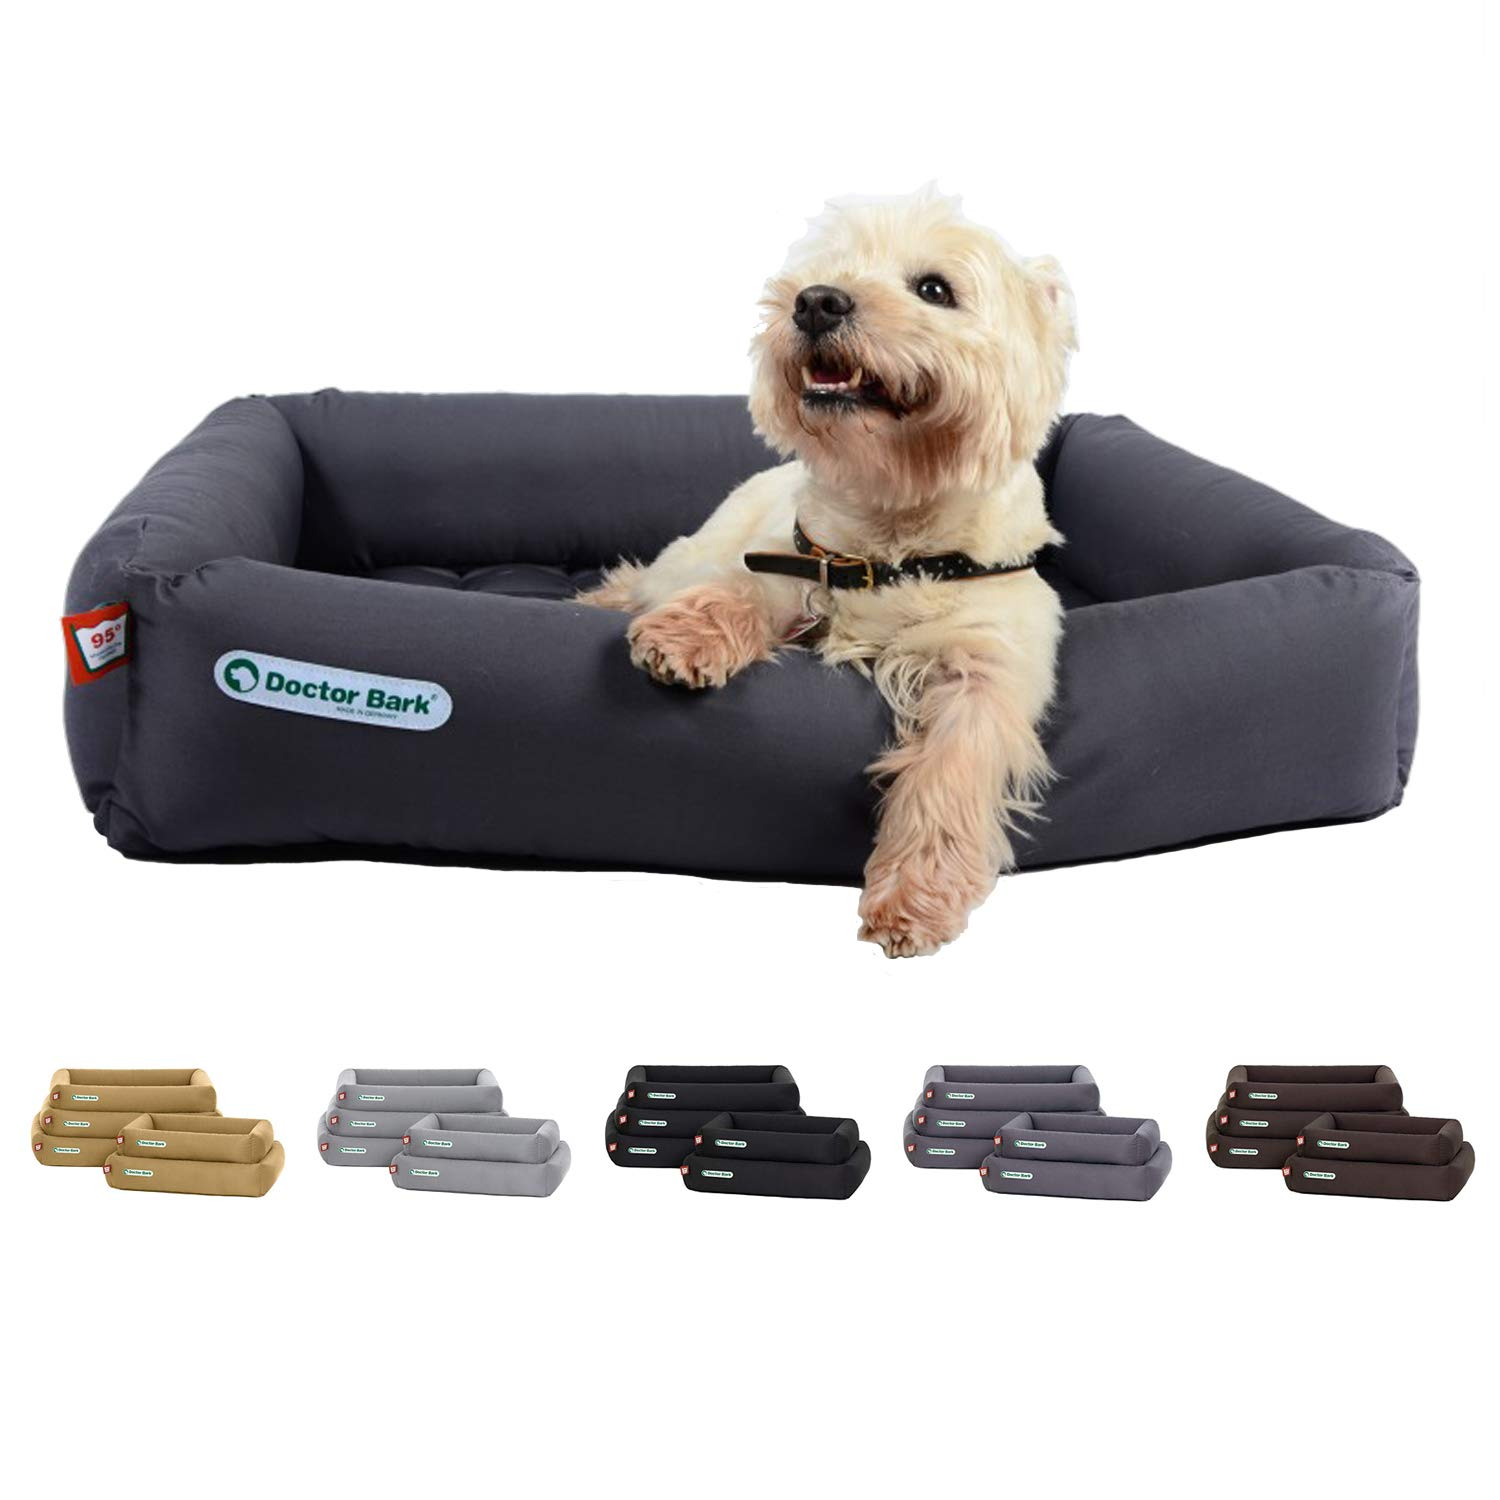 Brown Medium   27x23x6\Doctor Bark Dog Bed  Made in Germany   Deluxe Orthopedic Bed + Cushion   Washable up to 200°F   Suitable for dryers   Premium Quality   Suitable for allergics   Developed by Veterinarians